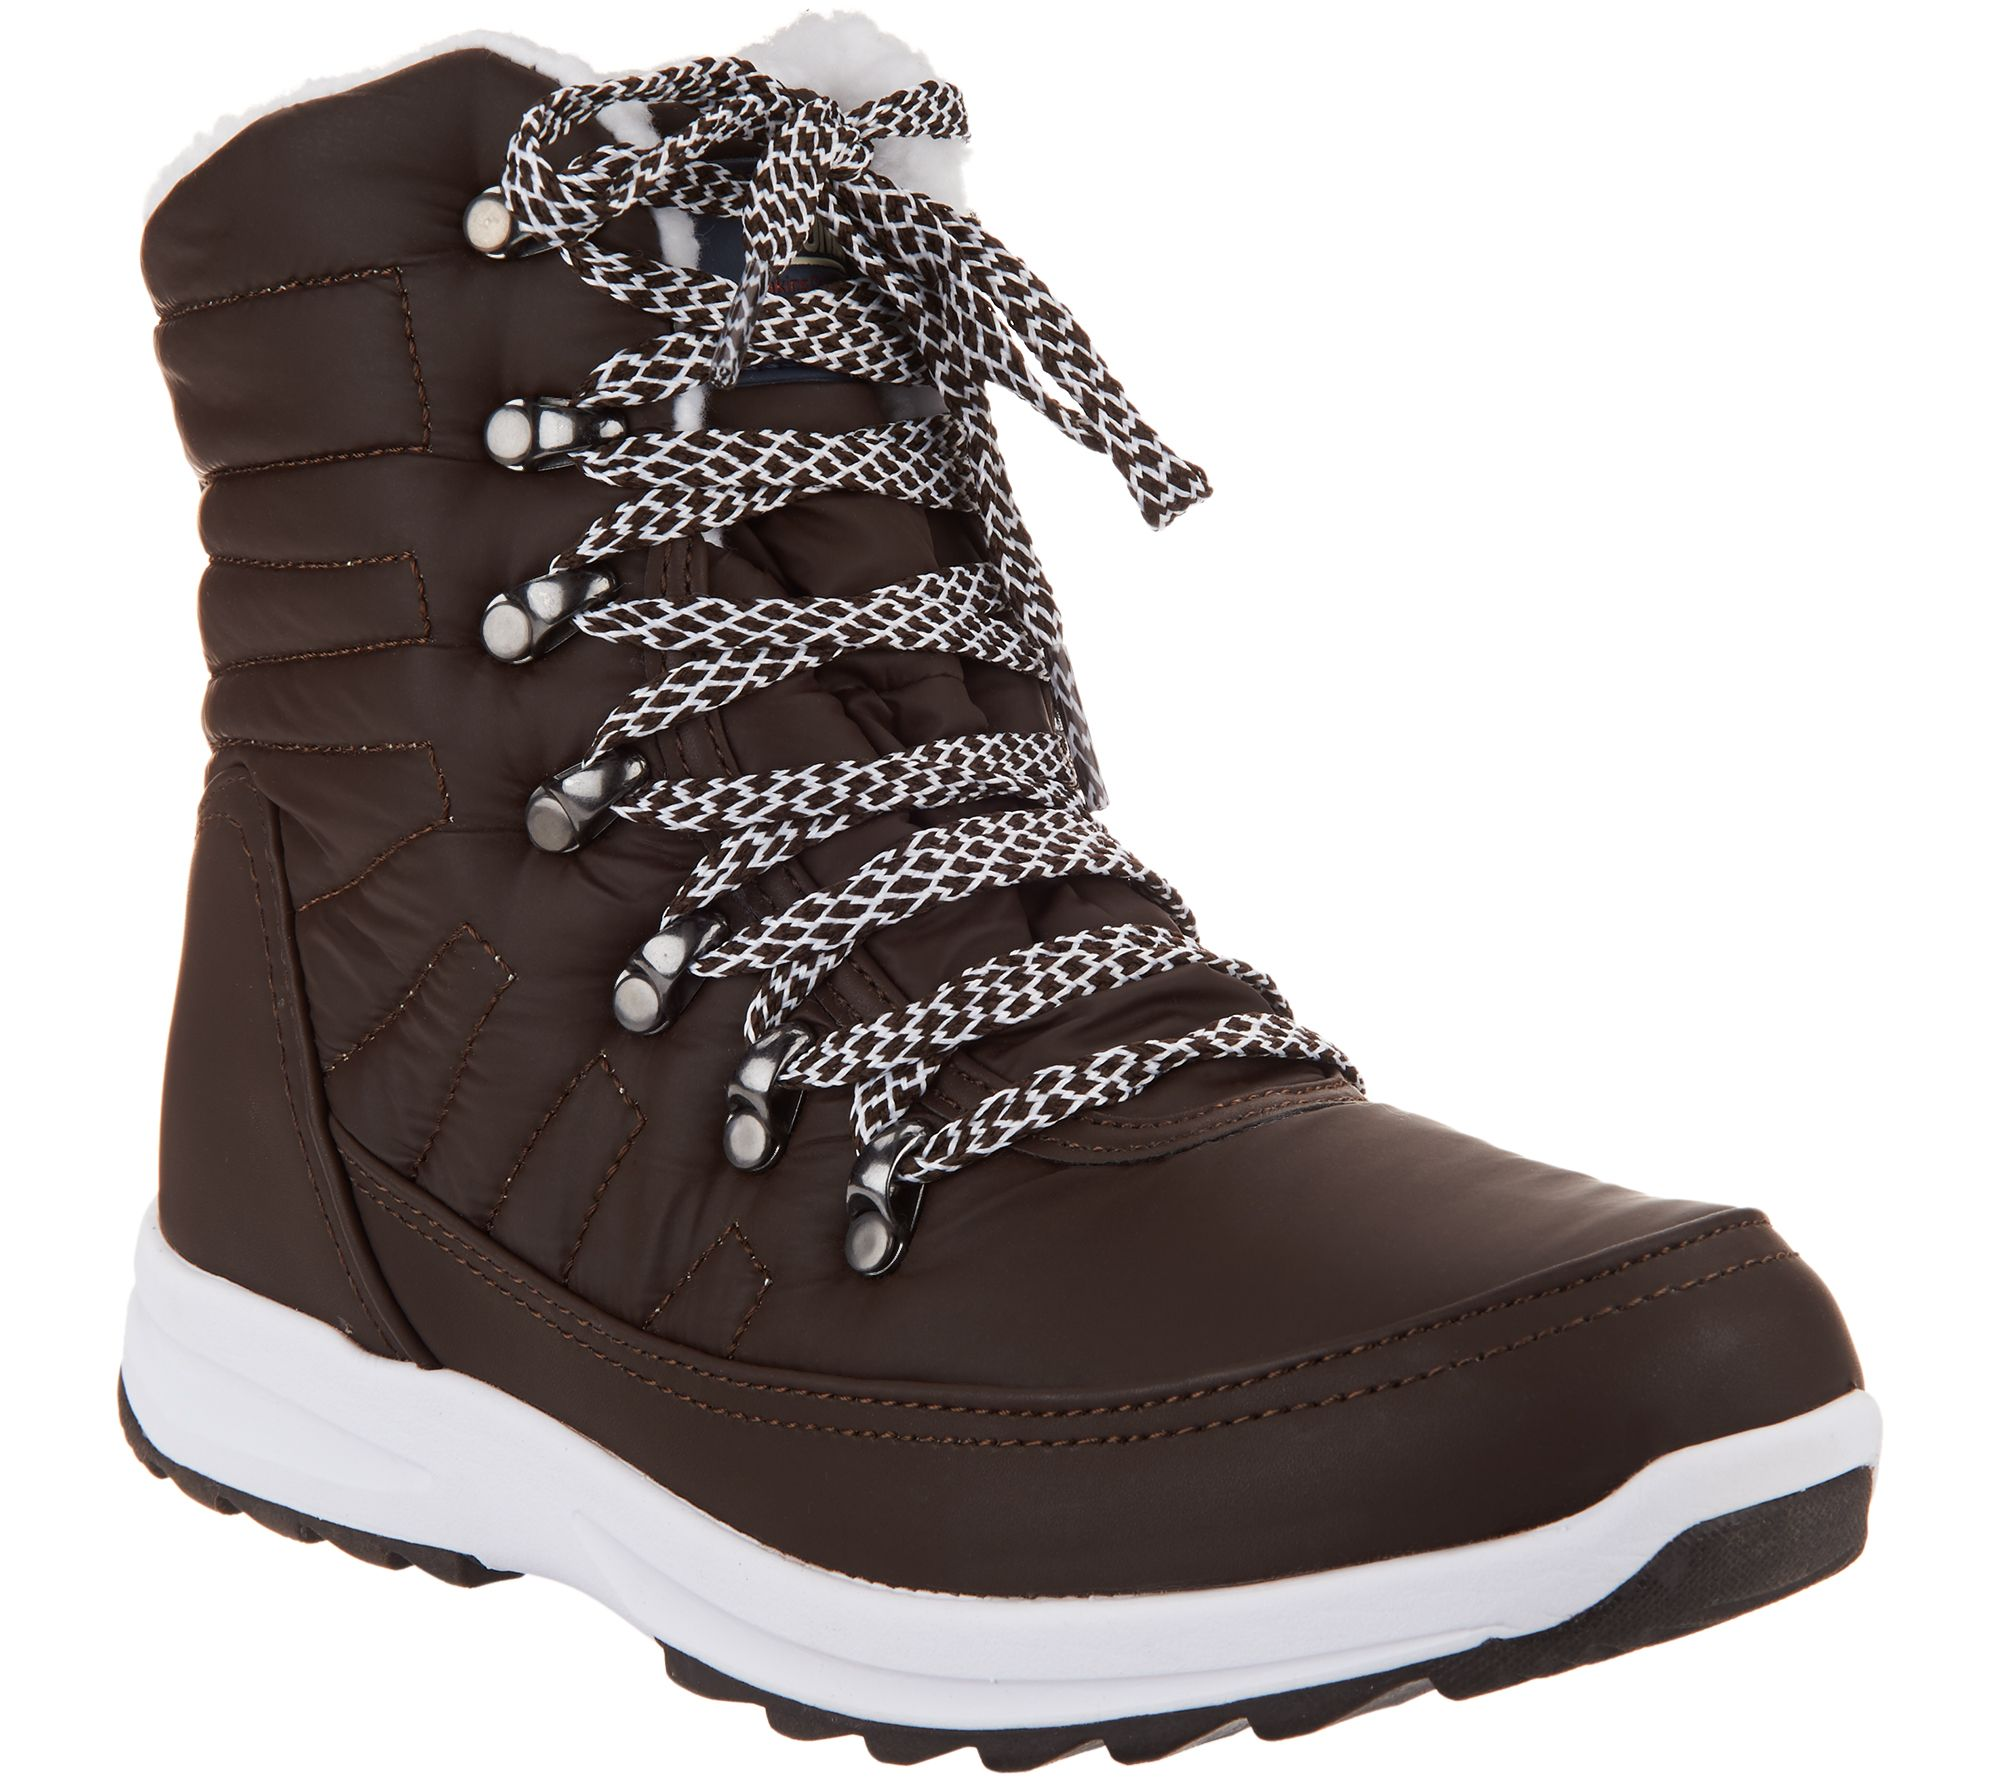 88a3ddadadc Khombu Waterproof Lace-up Ankle Boots - Alegra — QVC.com